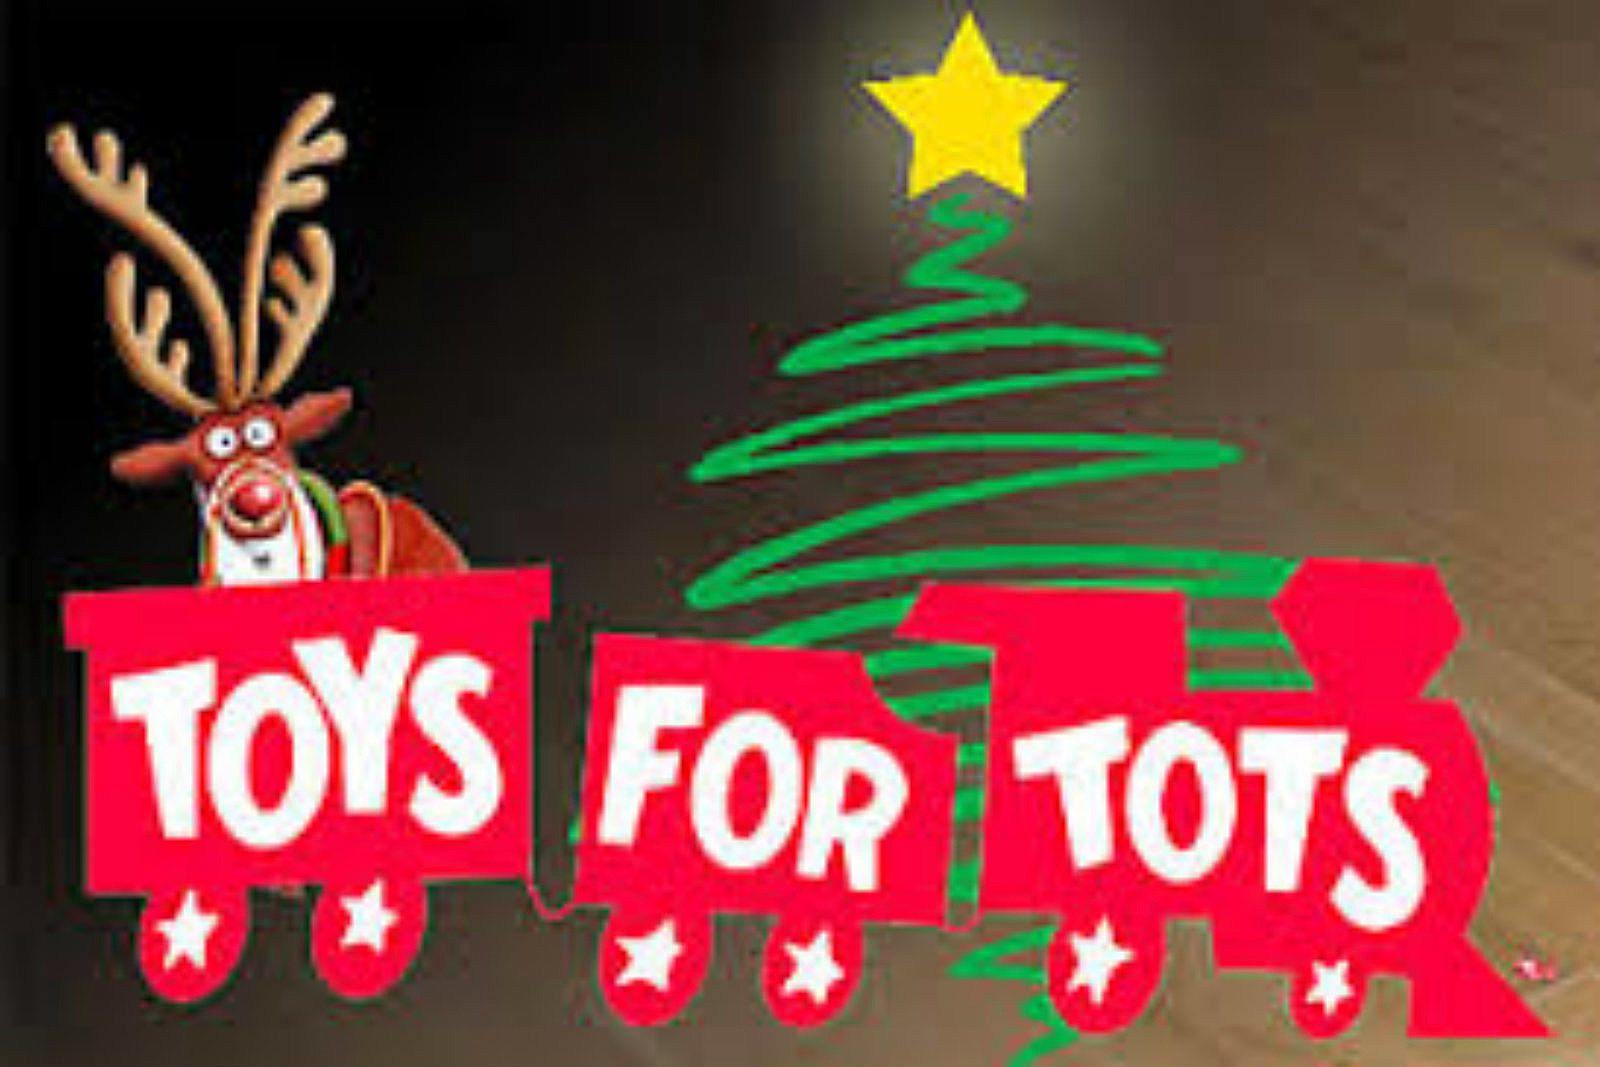 Toys For Tots Graphics : Grand junction toys for tots ramps up